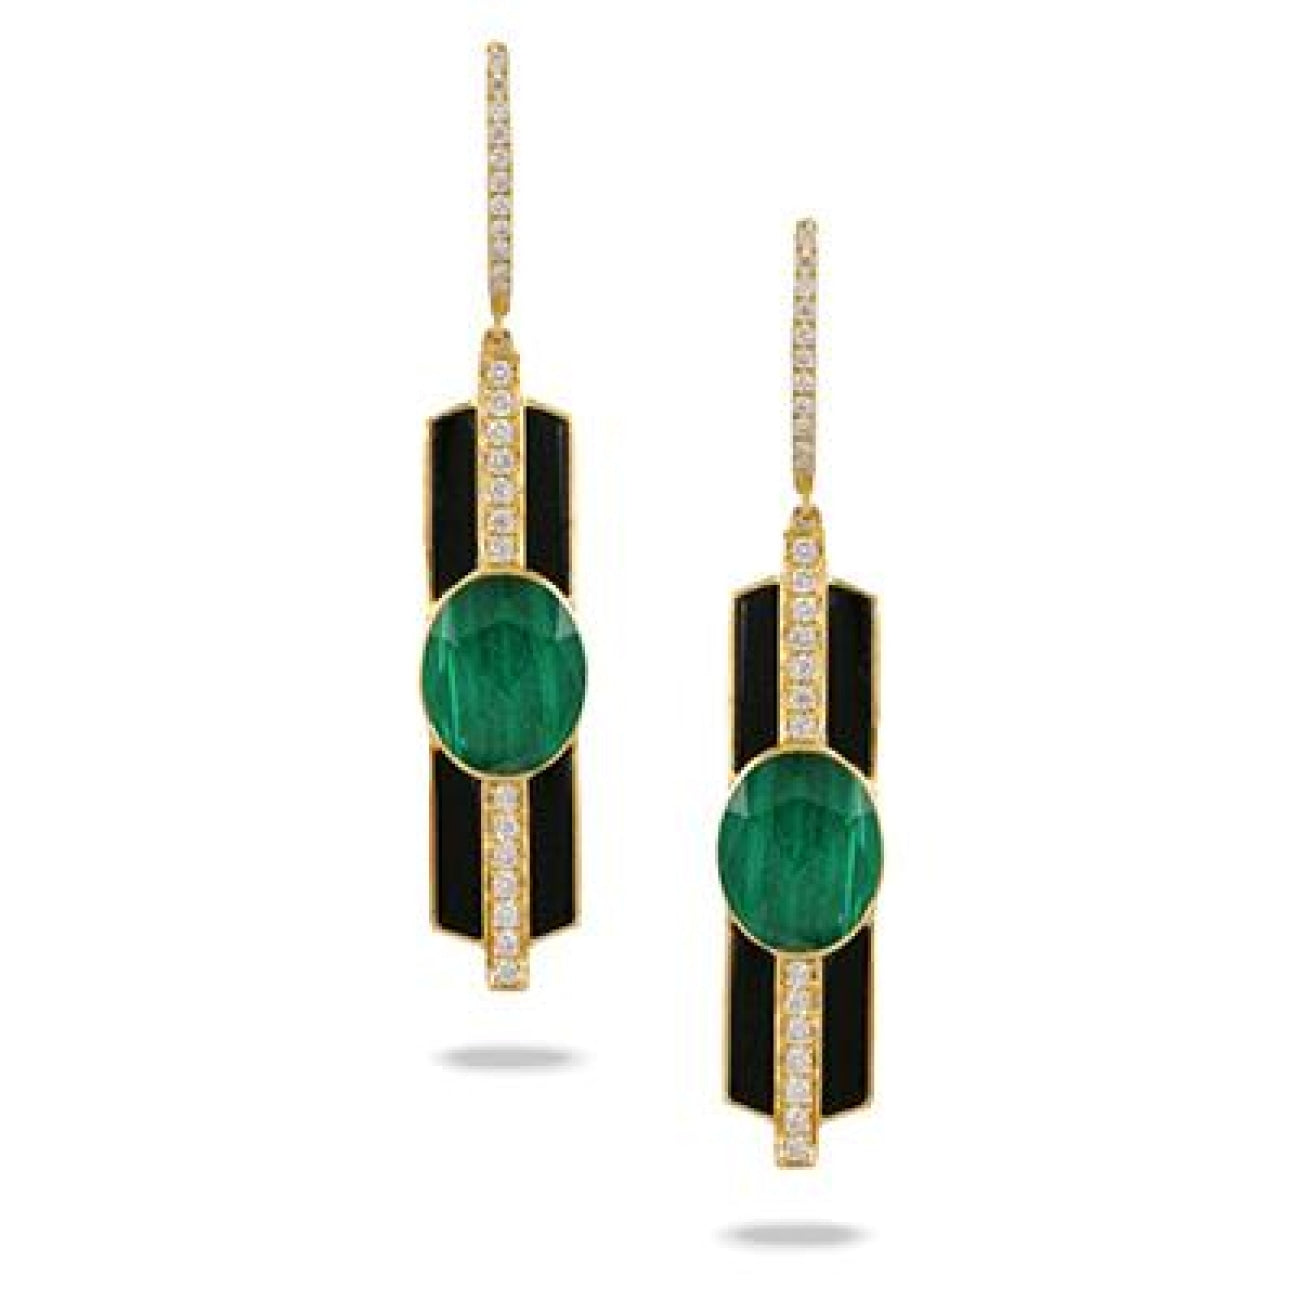 Doves Jewelry - E8743BOMC VERDE | Manfredi Jewels